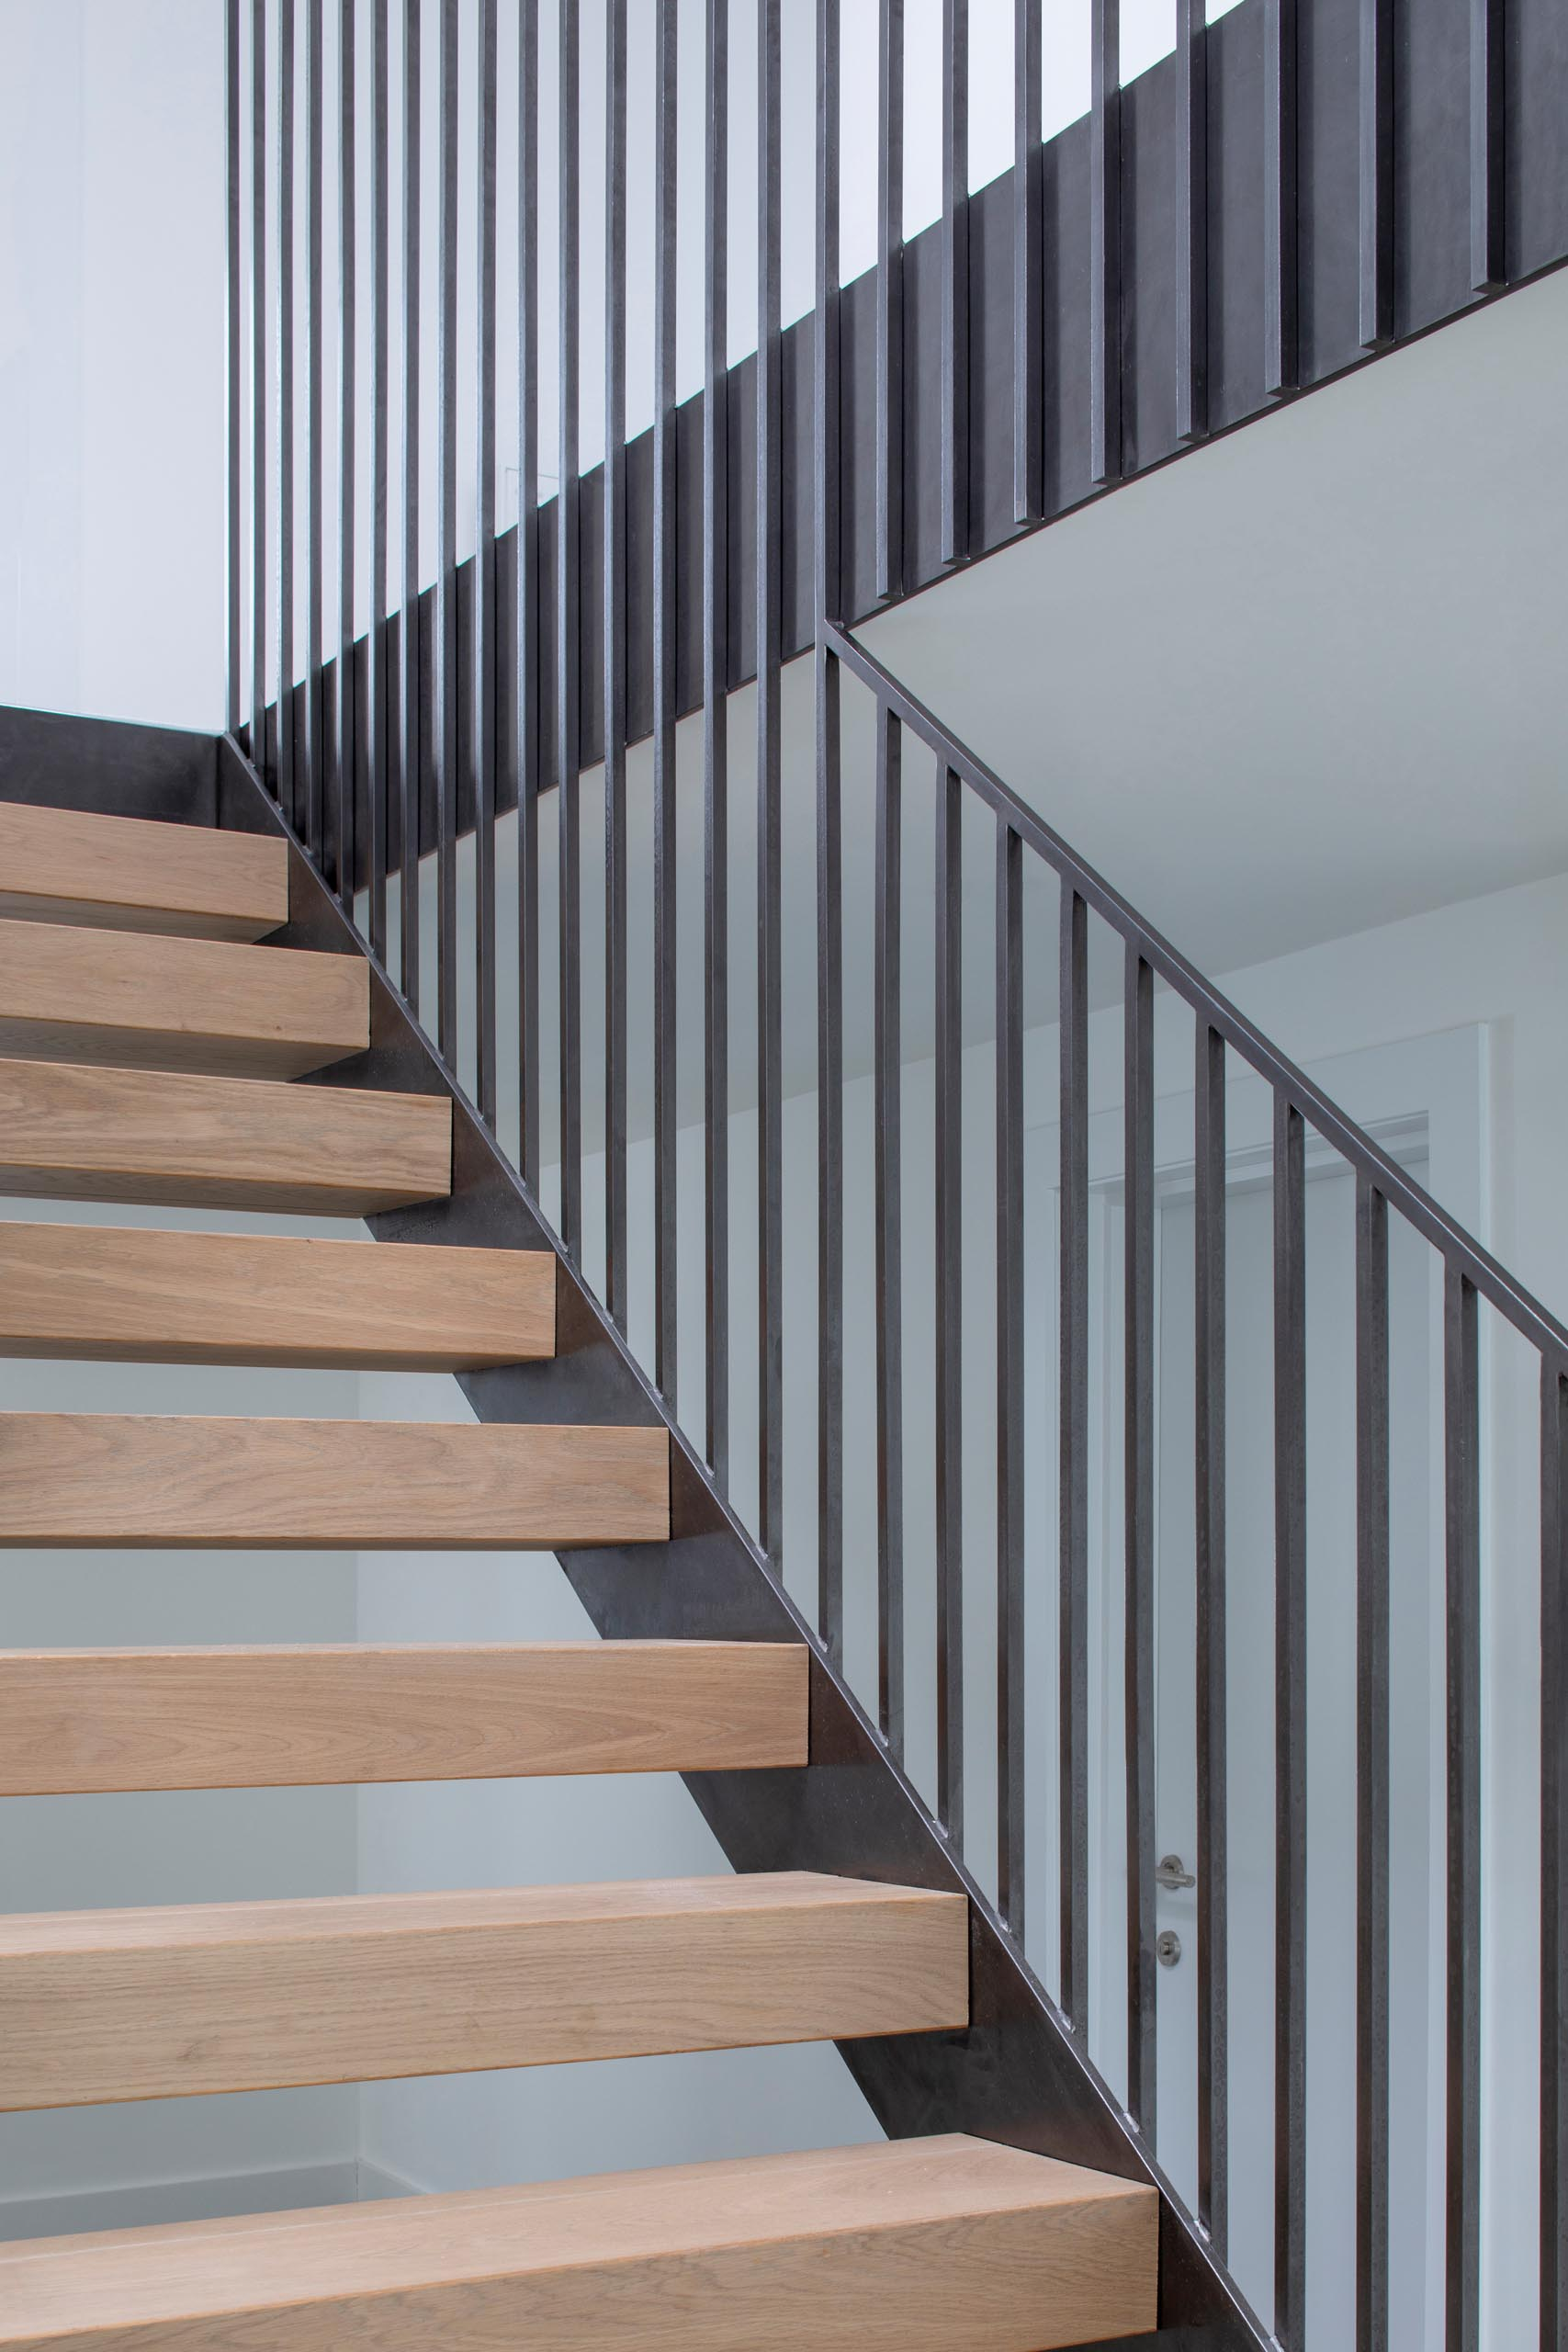 Modern steel and wood stairs.